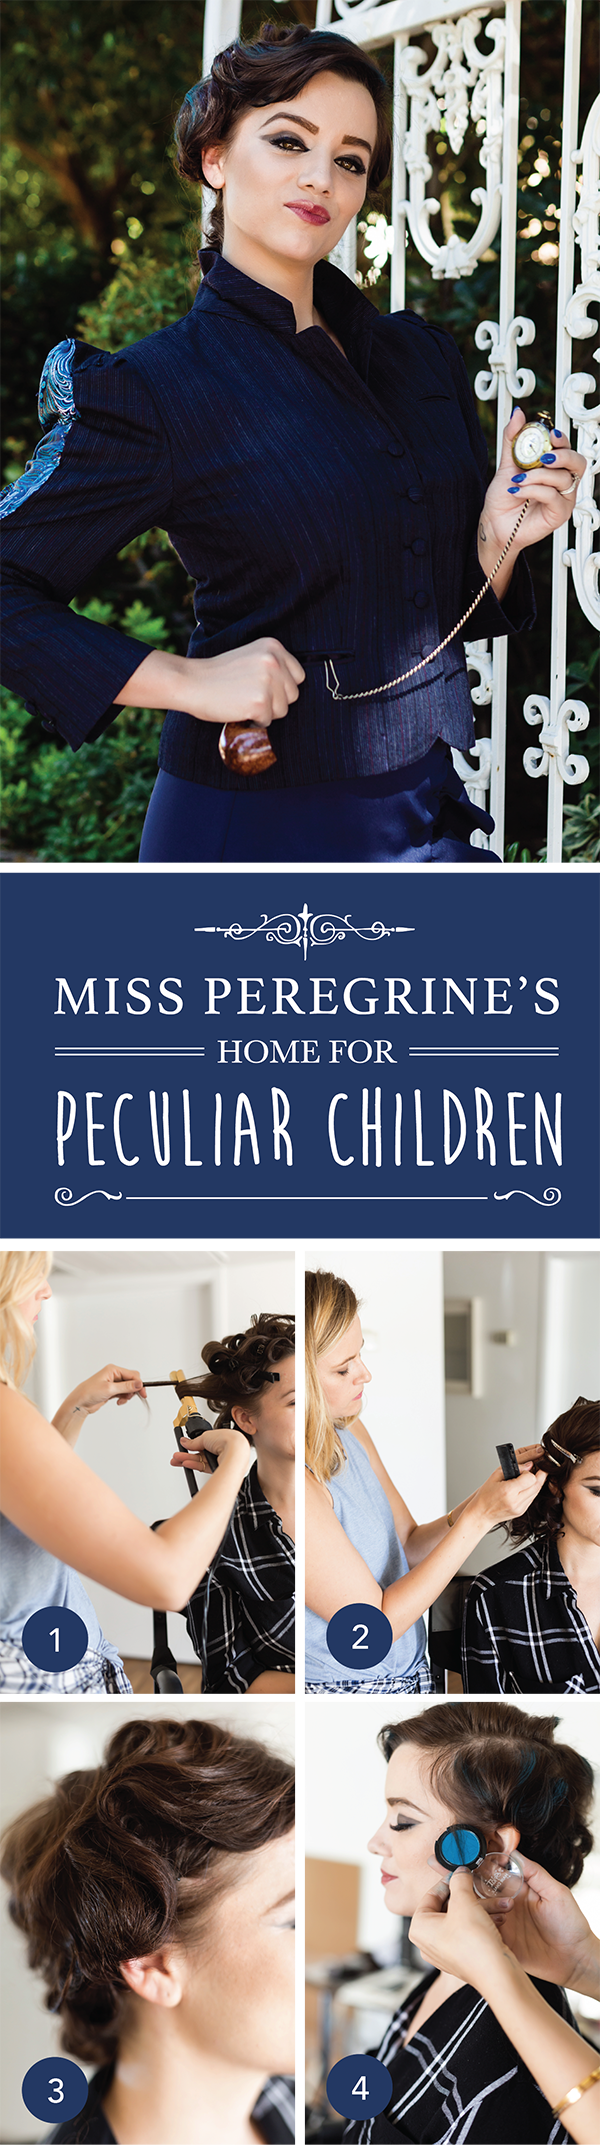 Halloween Makeup & Costume | Miss Peregrine